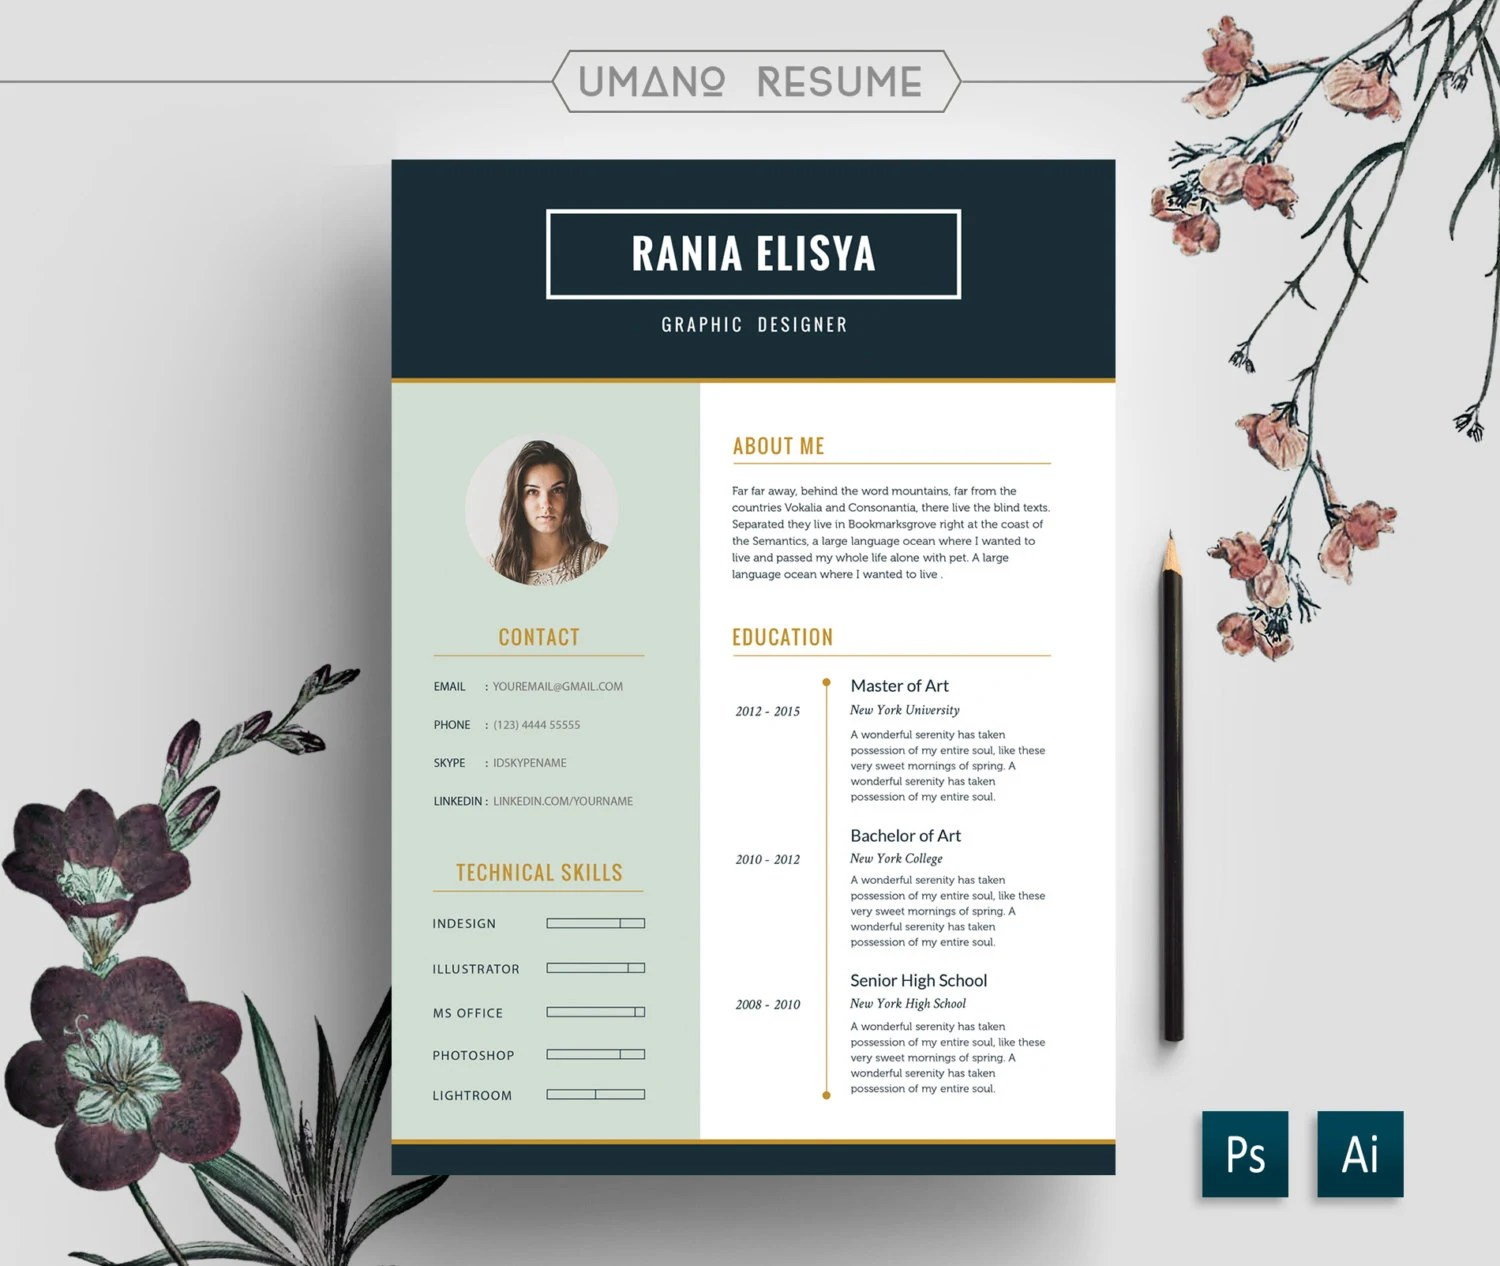 Photoshop Illustrator Or Indesign Dream Infinity Modern Resume Template Free Cover Letter For Word Ai